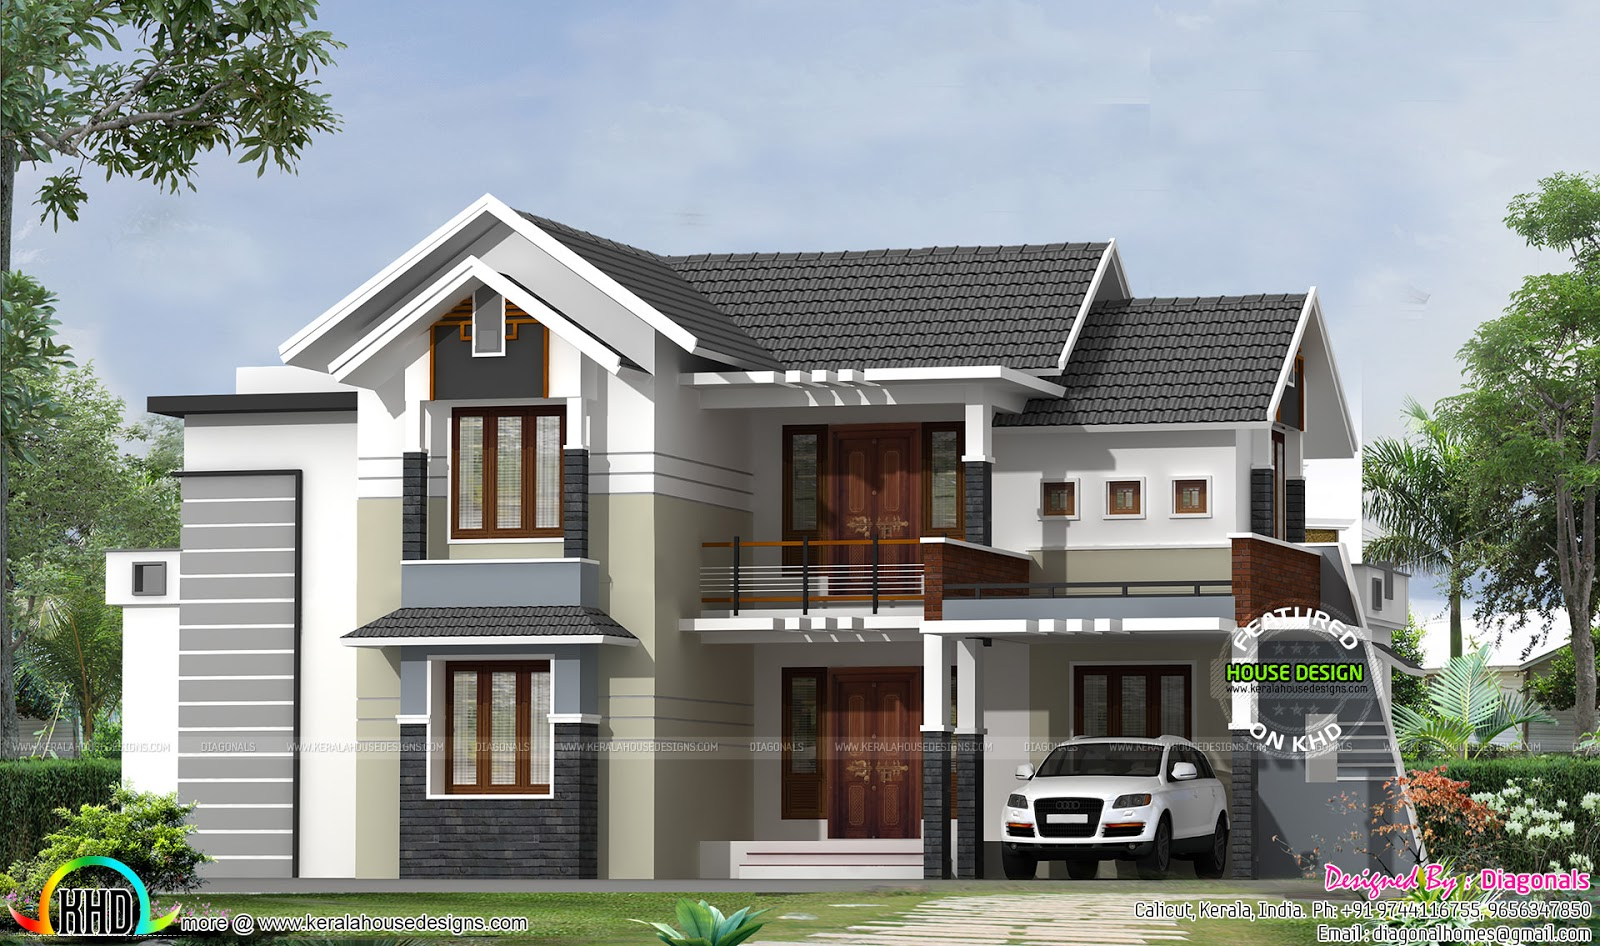 Modern mix traditional house architecture kerala home for Design traditions home plans